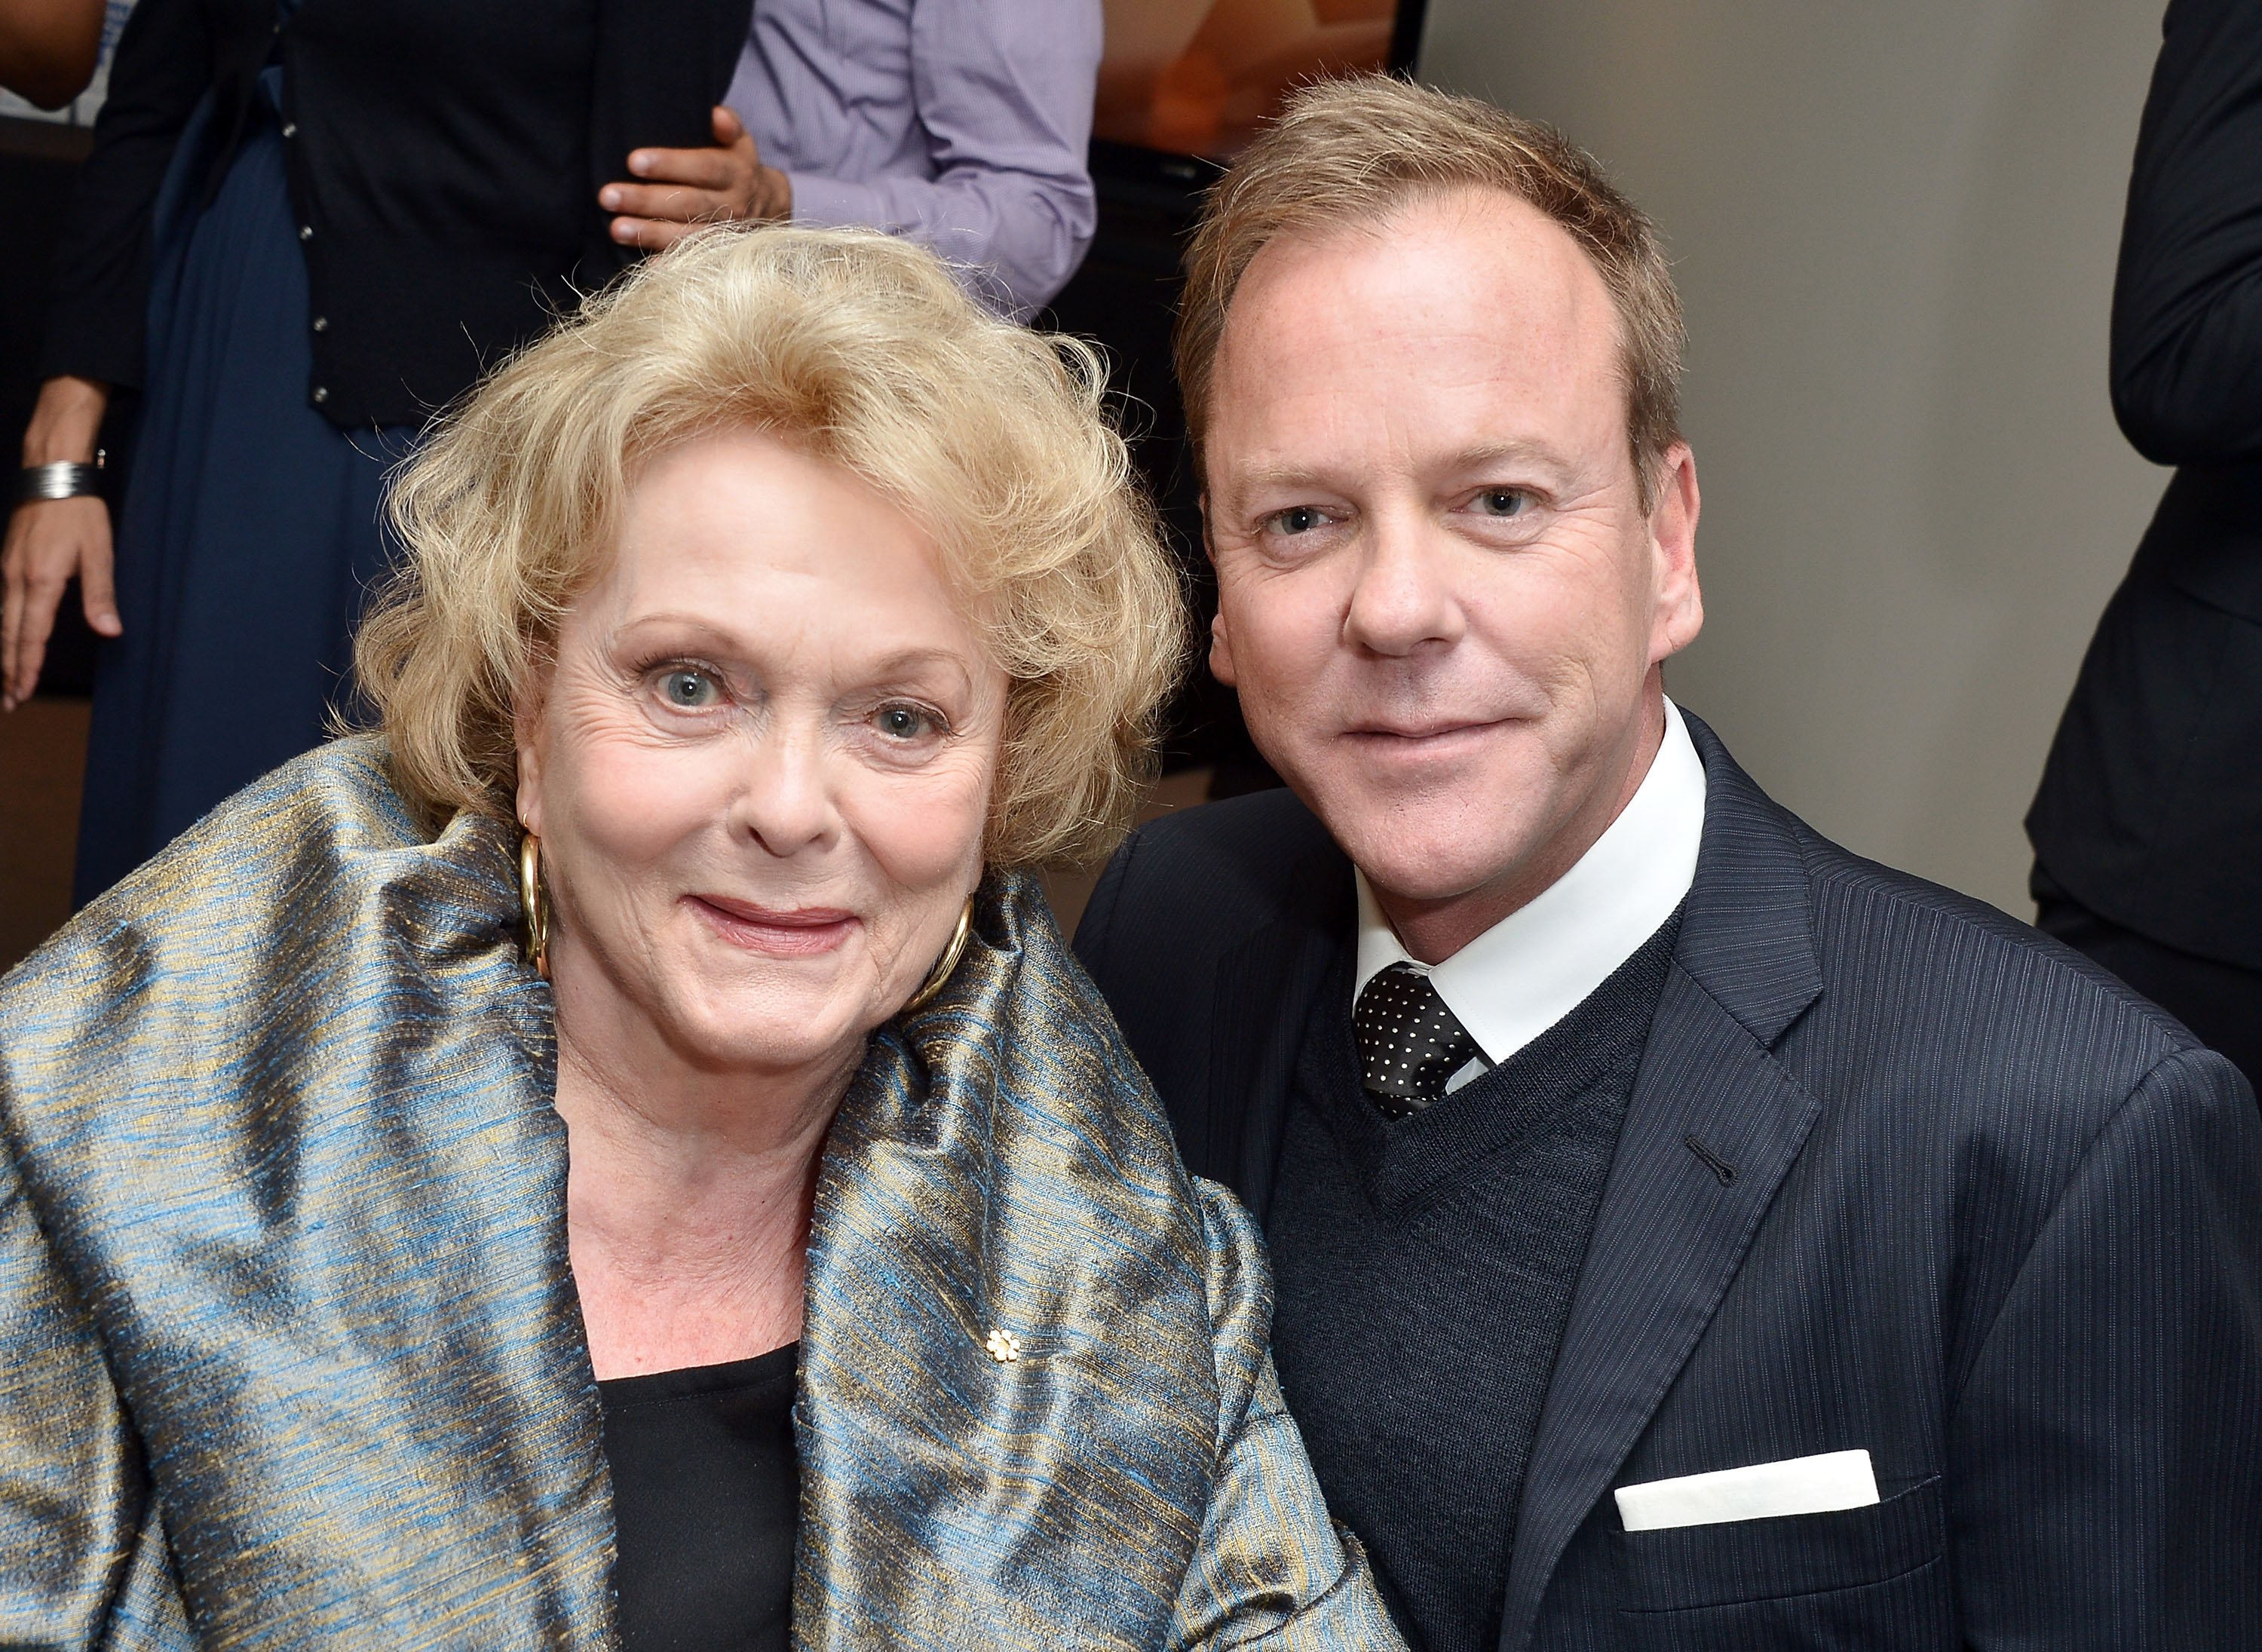 """Kiefer Sutherland and Shirley Douglas attend """"The Reluctant Fundamentalist"""" premiere during the 2012 Toronto International Film Festival on September 8, 2012 in Toronto, Canada 